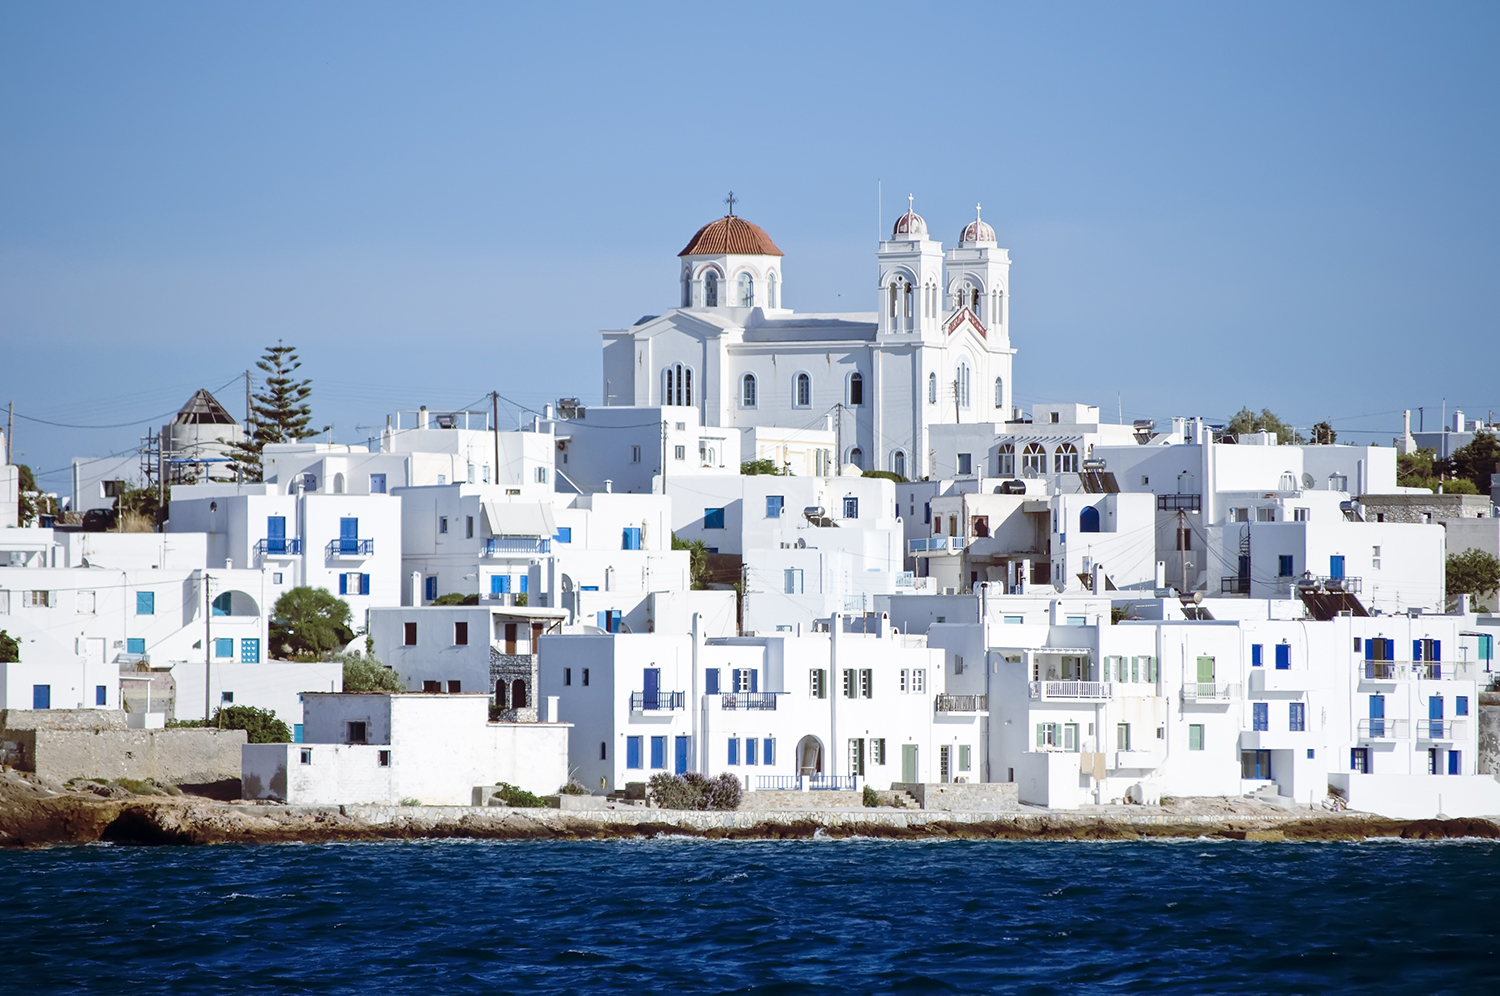 Greece Island of Paros with Village Of Naoussa view from yacht charter in Mediterranean sea